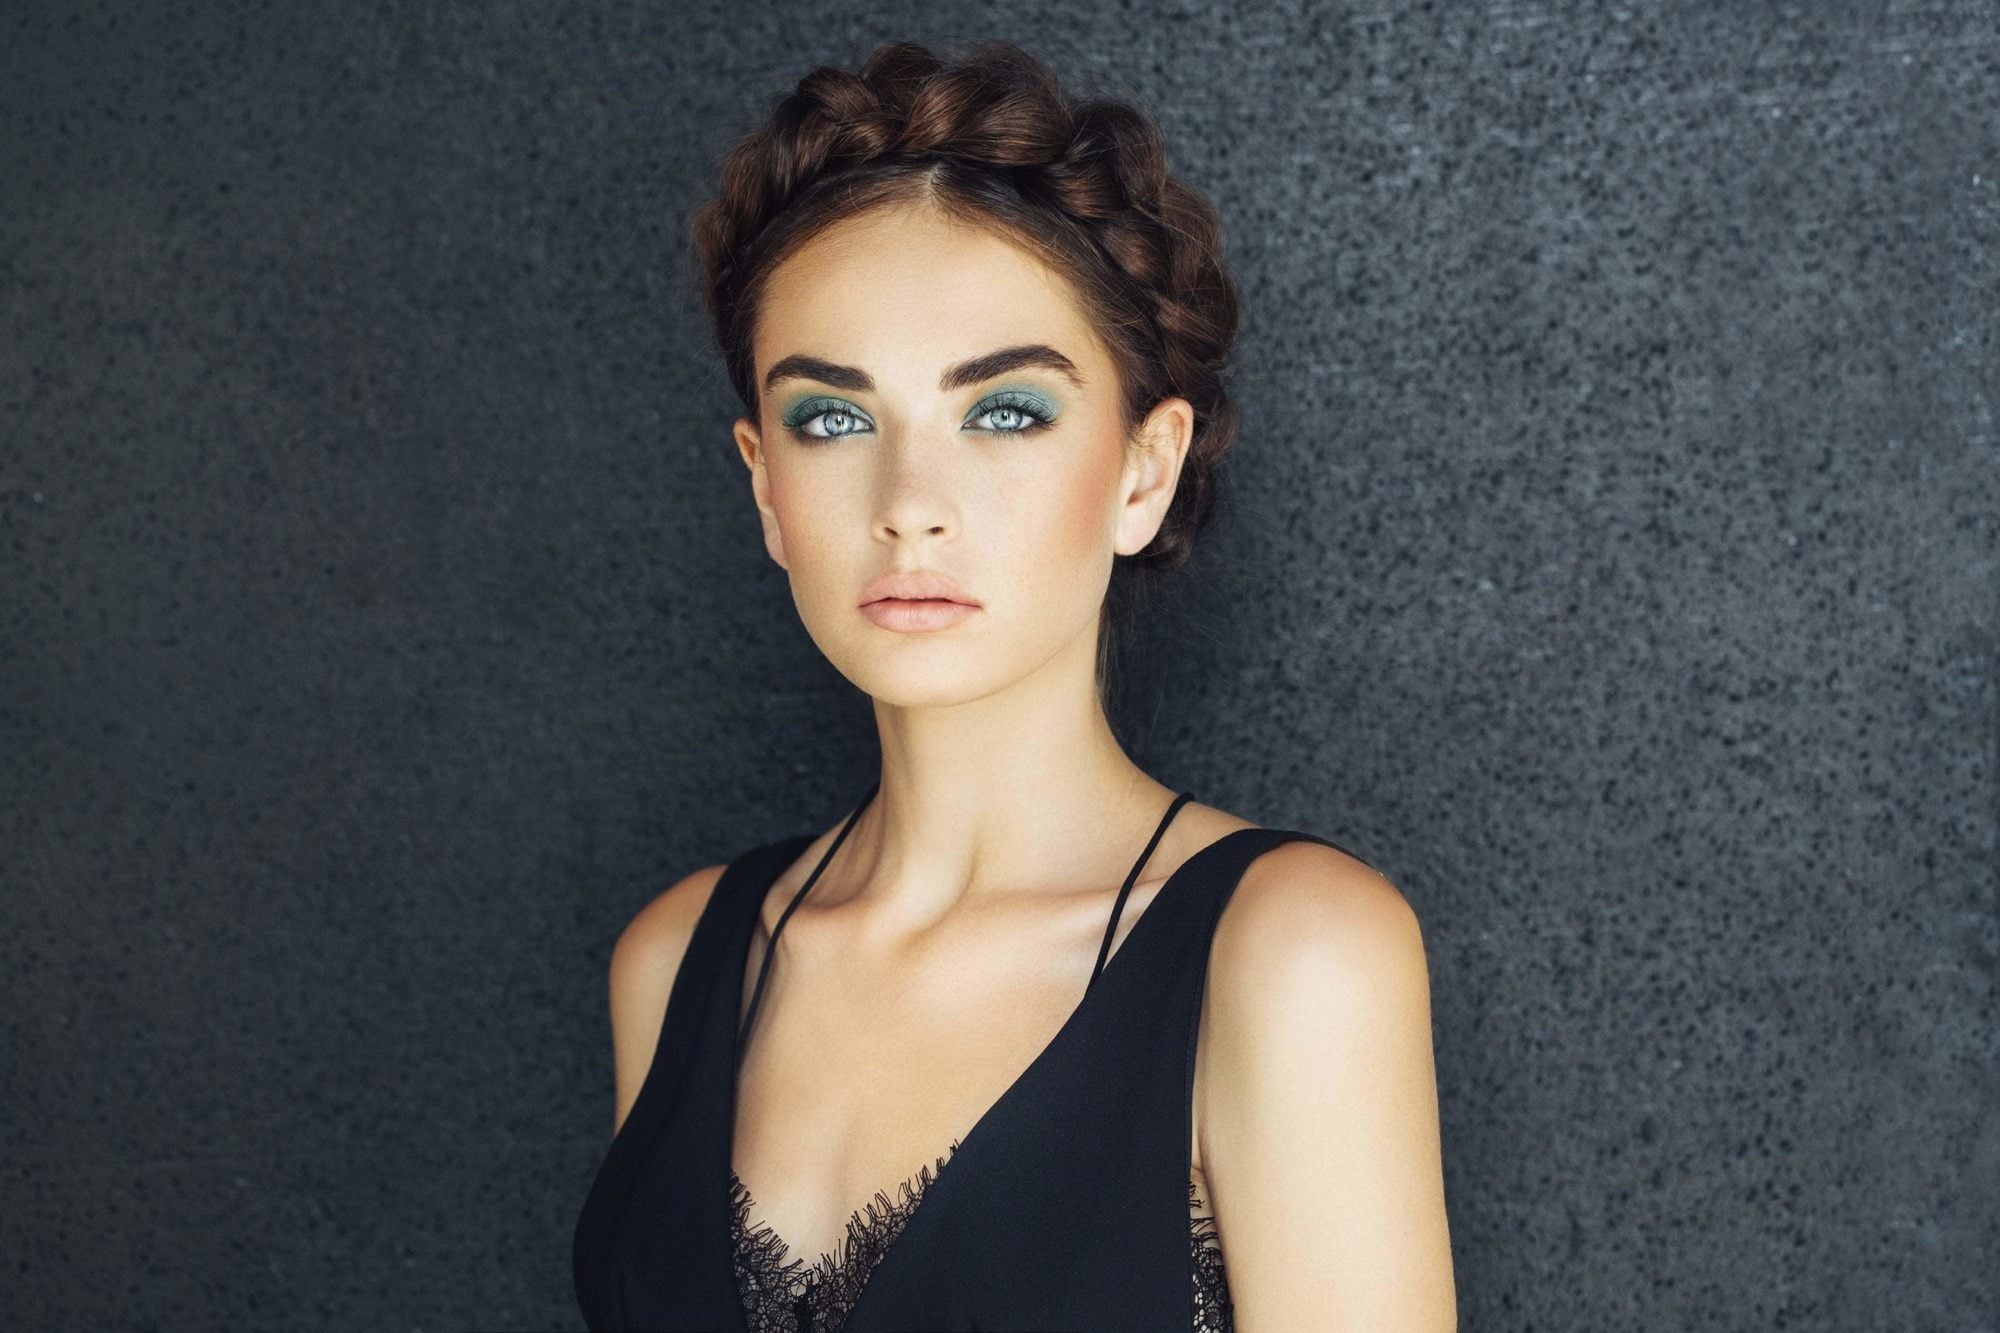 front facing image of a woman with dark hair in milkmaid braid, halo braids